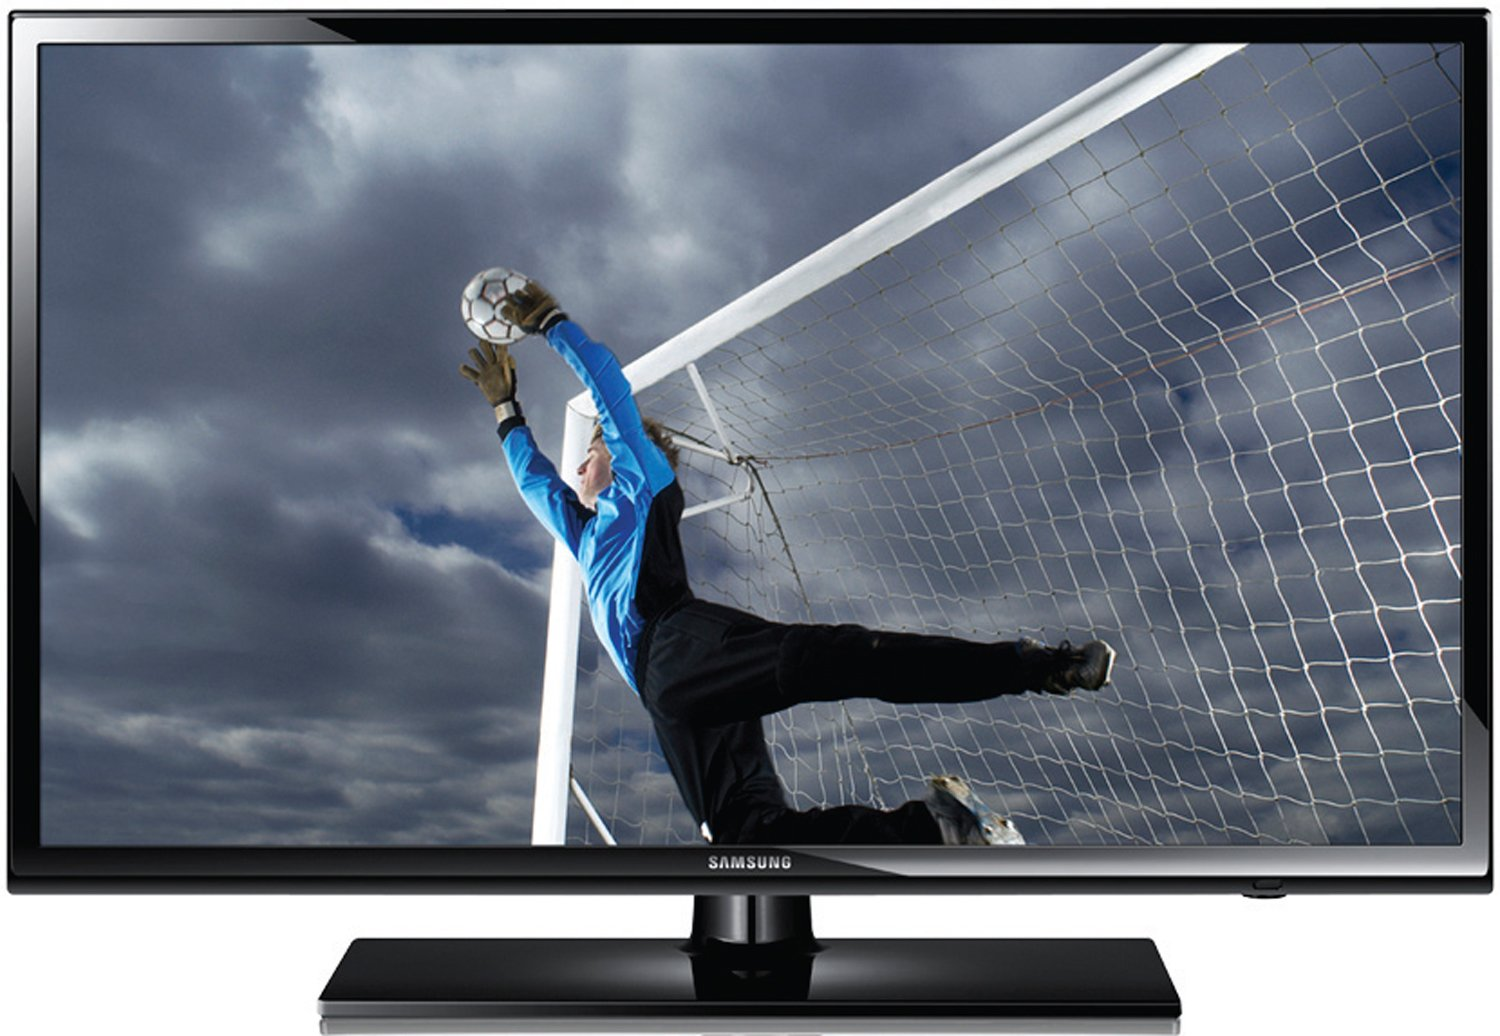 Reviewing the Samsung UN32EH4003 32-inch 720p 60Hz LED HDTV to see if this is really a top buy in 2013.  